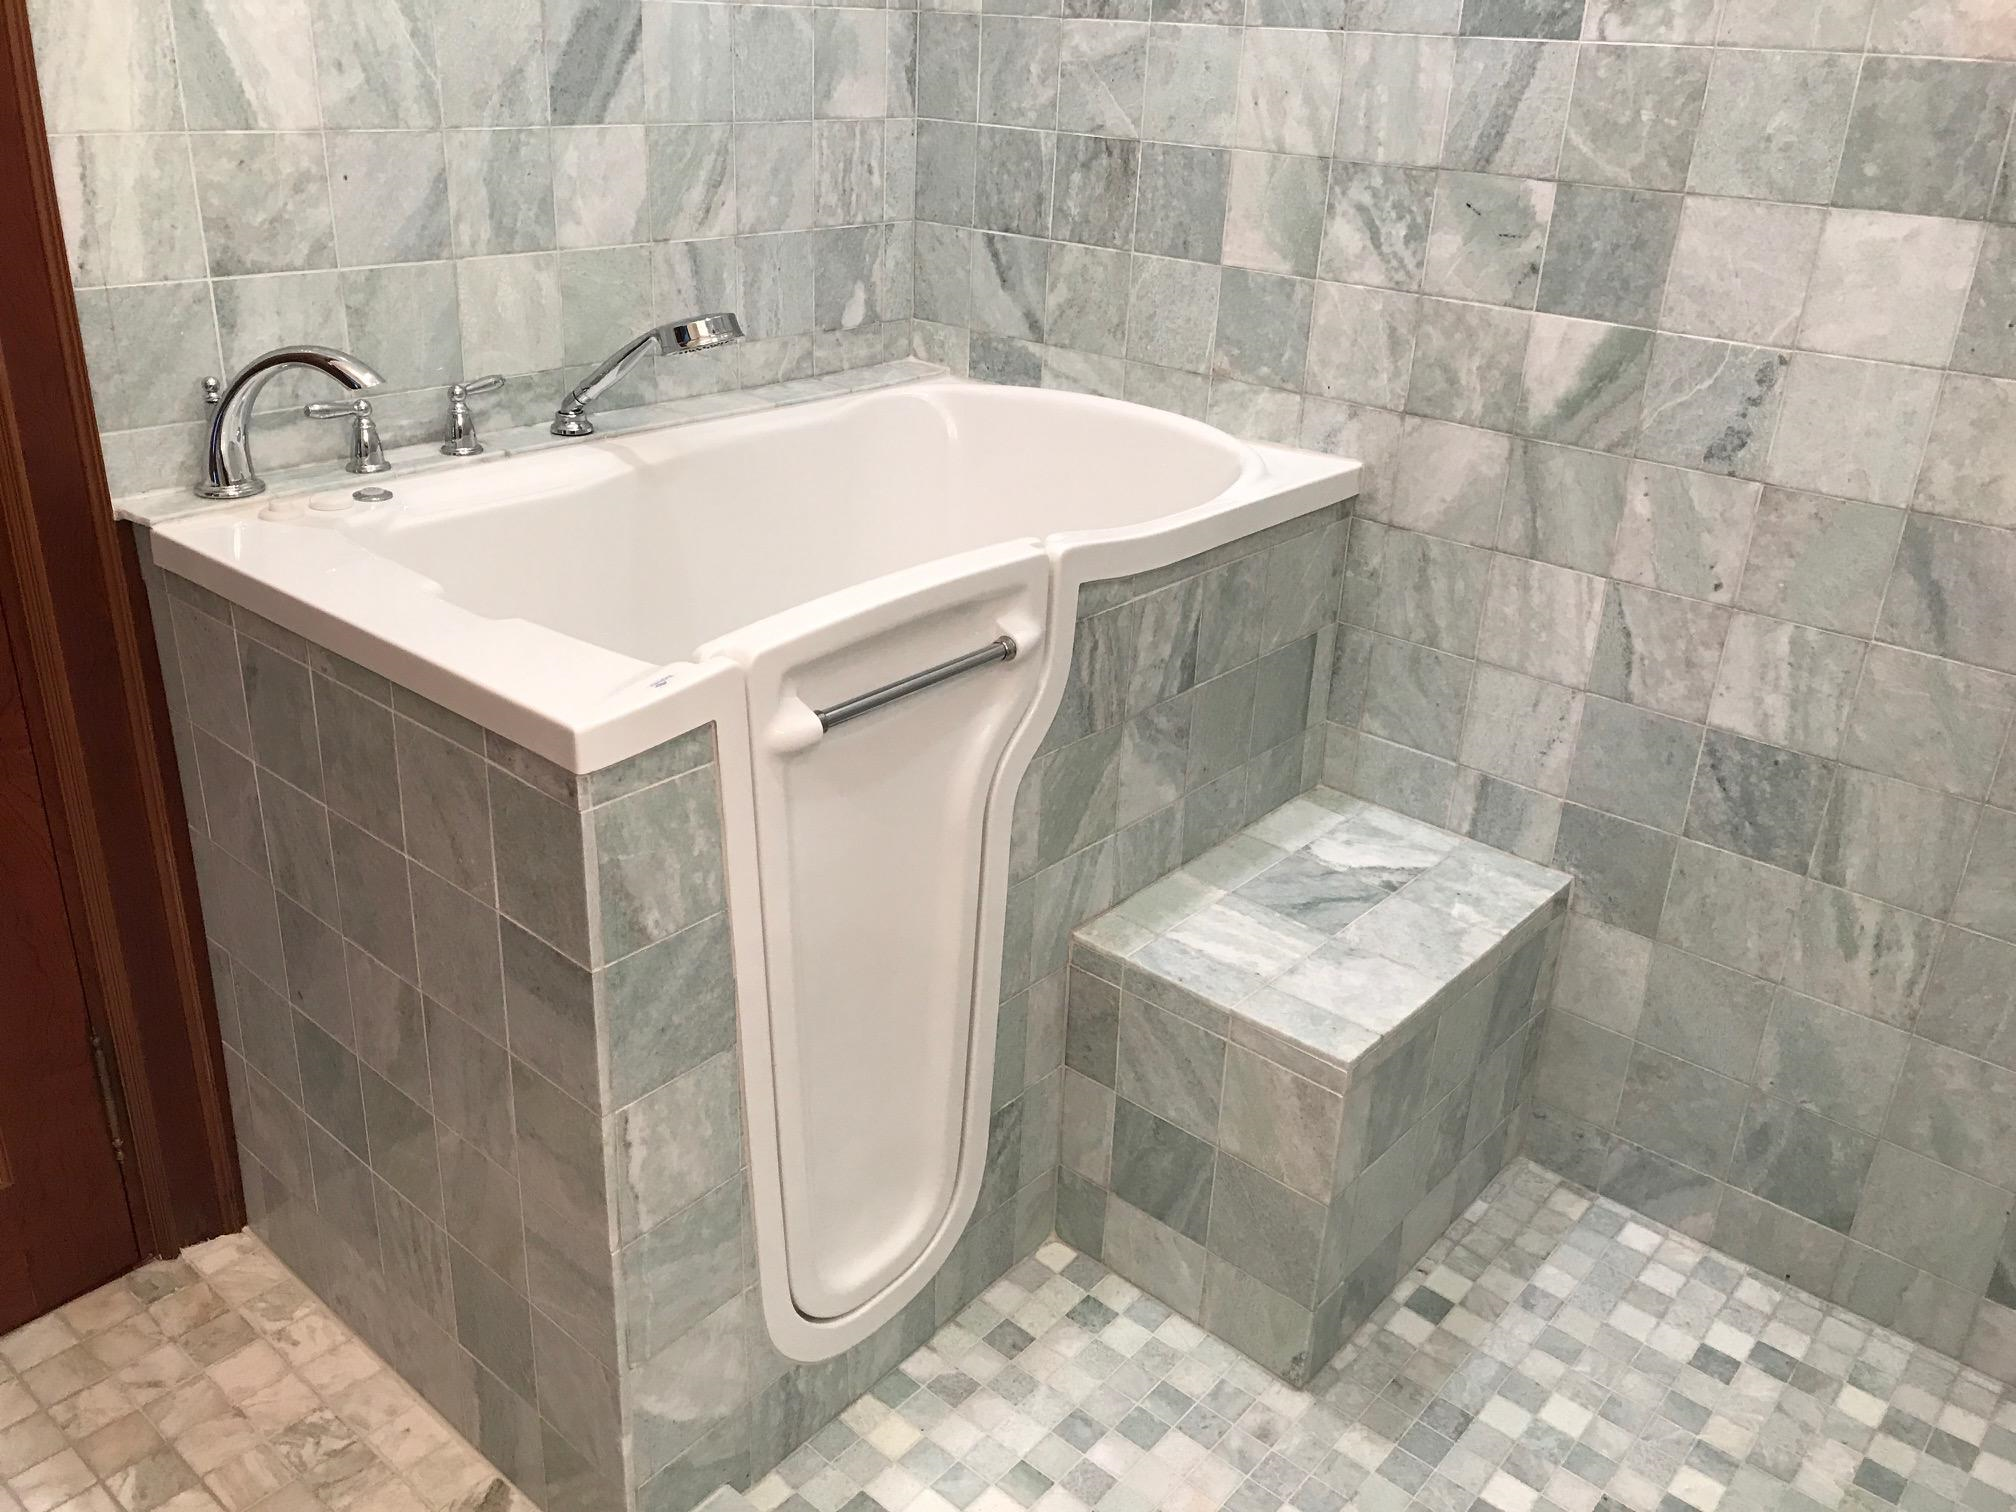 Stylish Walk-in Tub and Shower Combination | Mansfield Plumbing